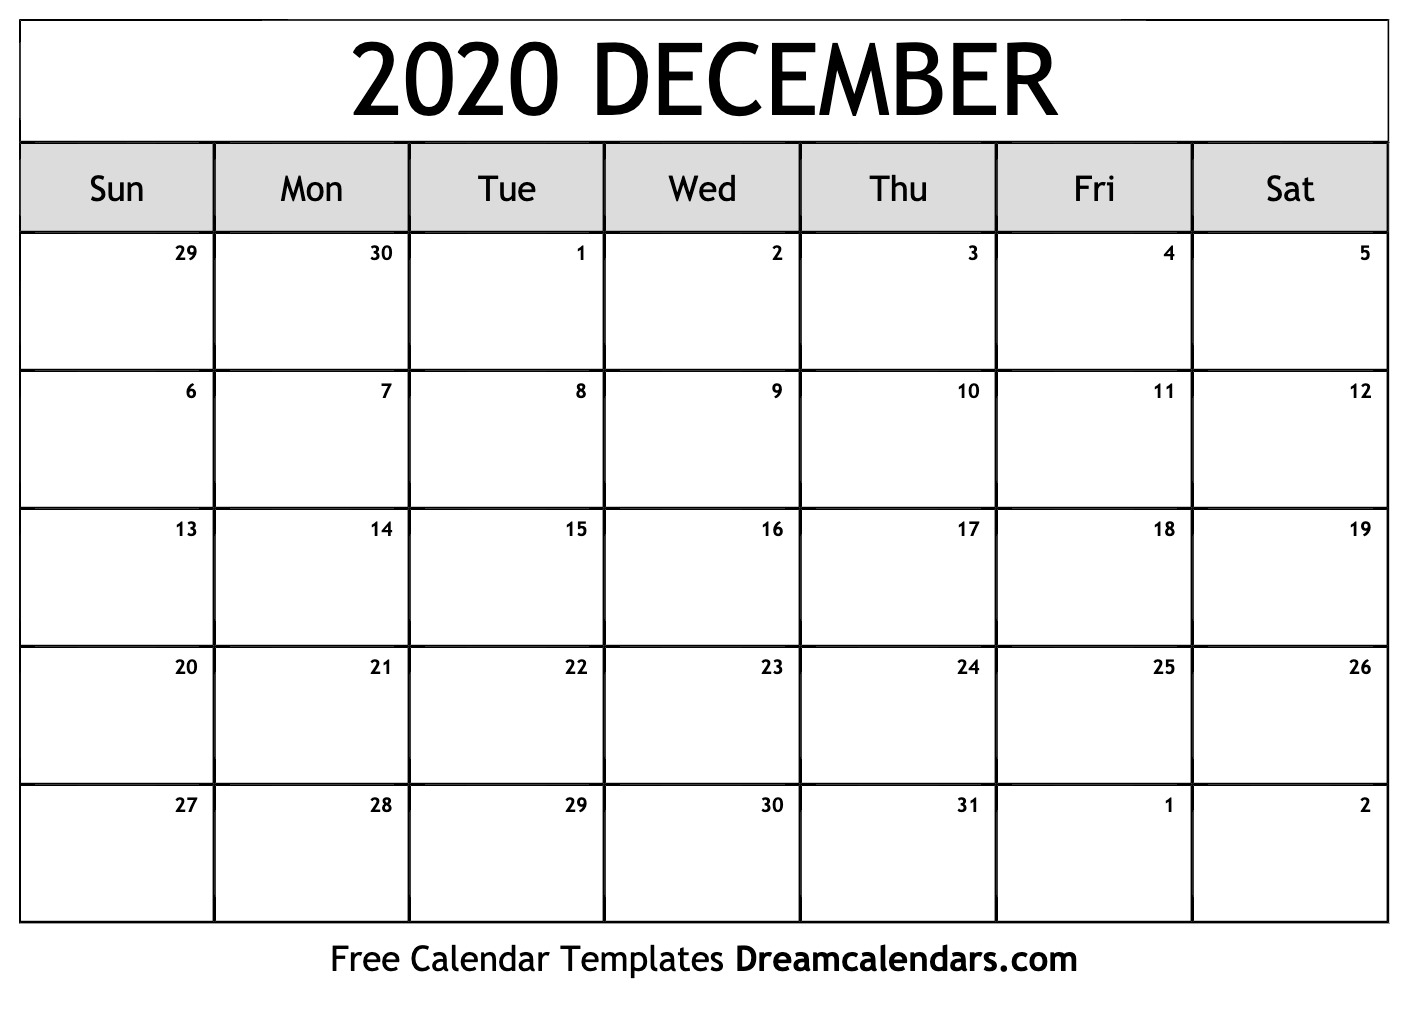 Calendar Template Dec 2020 - Wpa.wpart.co